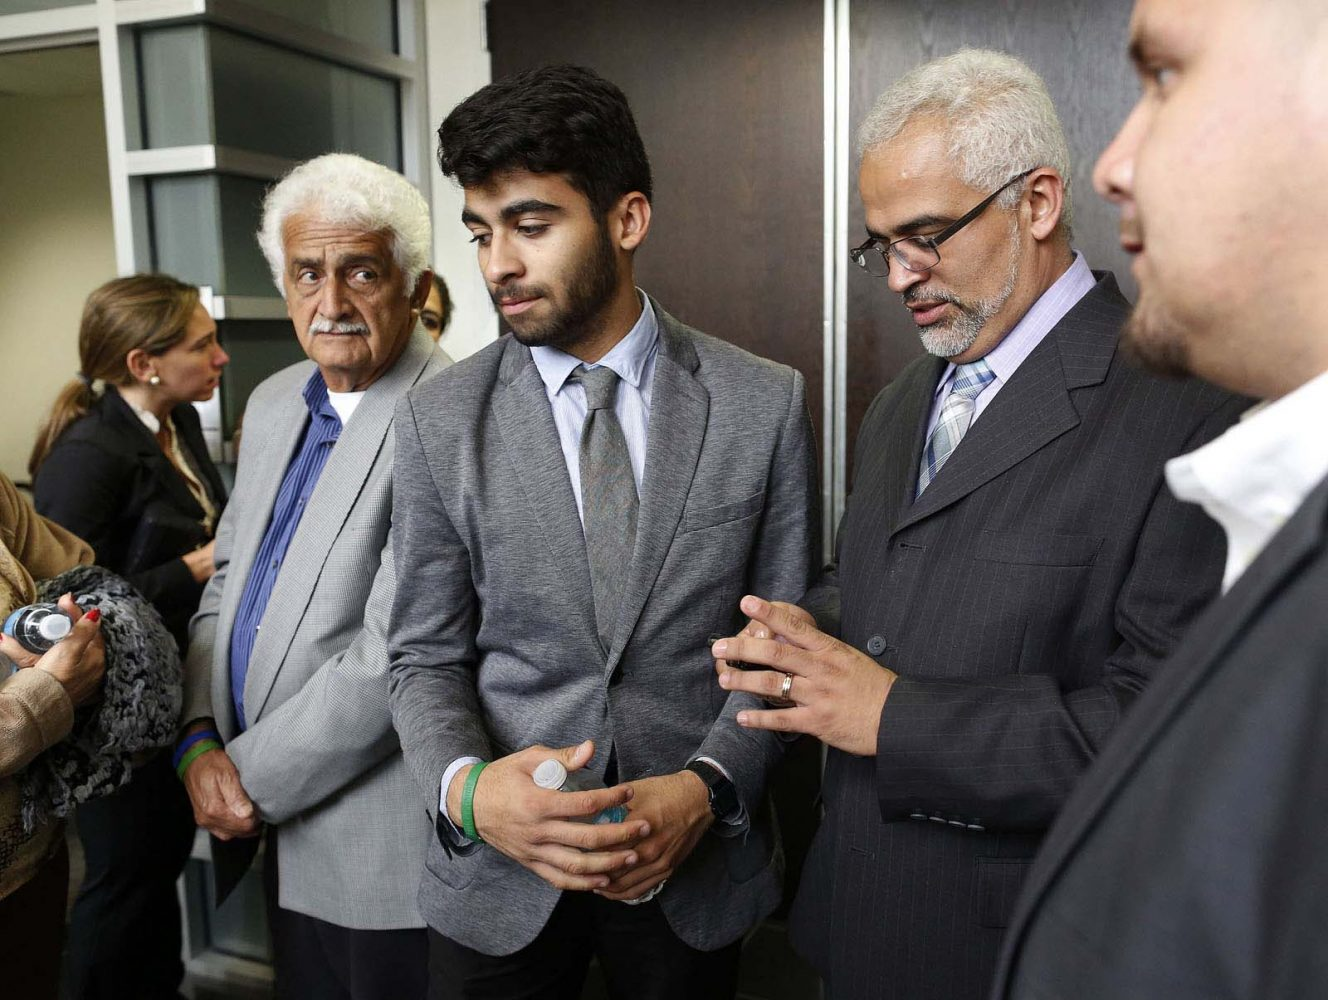 Alex and Carlos Aguilar, the brother and father of slain University of Florida student Christian Aguilar, from left at center, wait outside the courtroom following a lunch break during Pedro Bravo's murder trial at the Alachua County Criminal Justice Center Friday, August 15, 2014.  Bravo is accused of killing University of Florida student Christian Aguilar.  (Doug Finger/The Gainesville Sun/Pool)